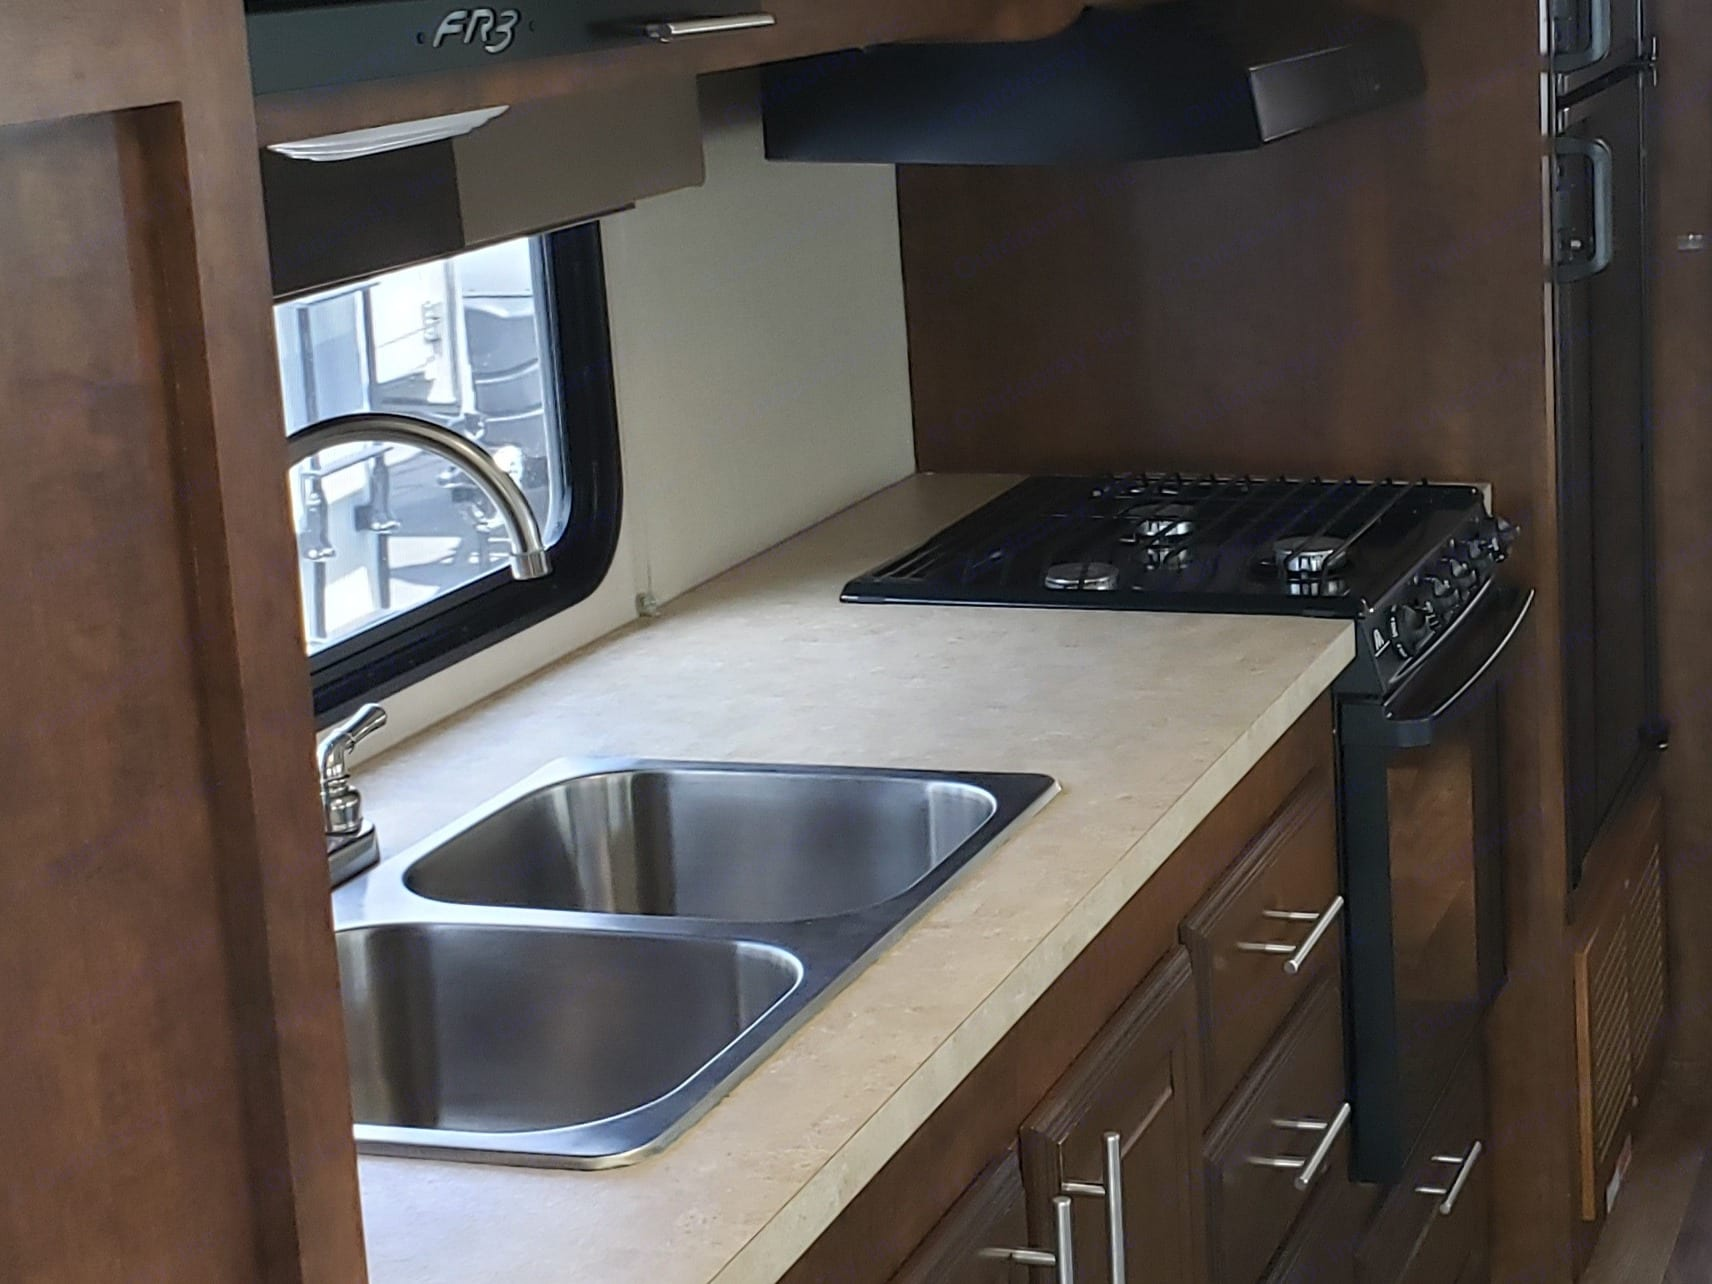 """Large counter area with double stainless steel sinks, with large refrigerator microwave,  32"""" tv, stove top with large oven.. Forest River Fr3 2015"""